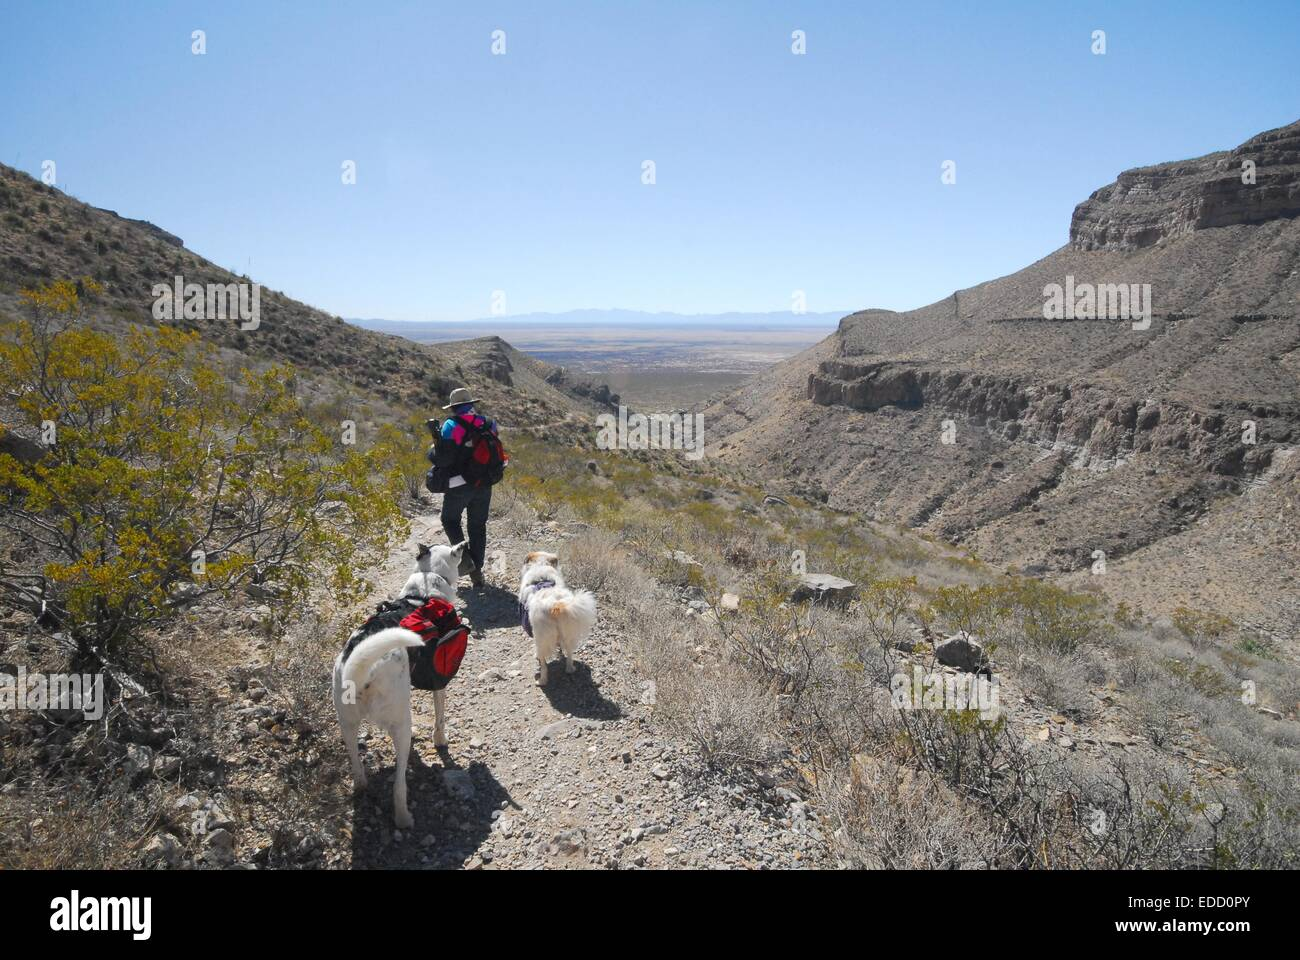 Hiking a  trail in Oliver Lee State Park, New Mexico with my sister and dogs. - Stock Image